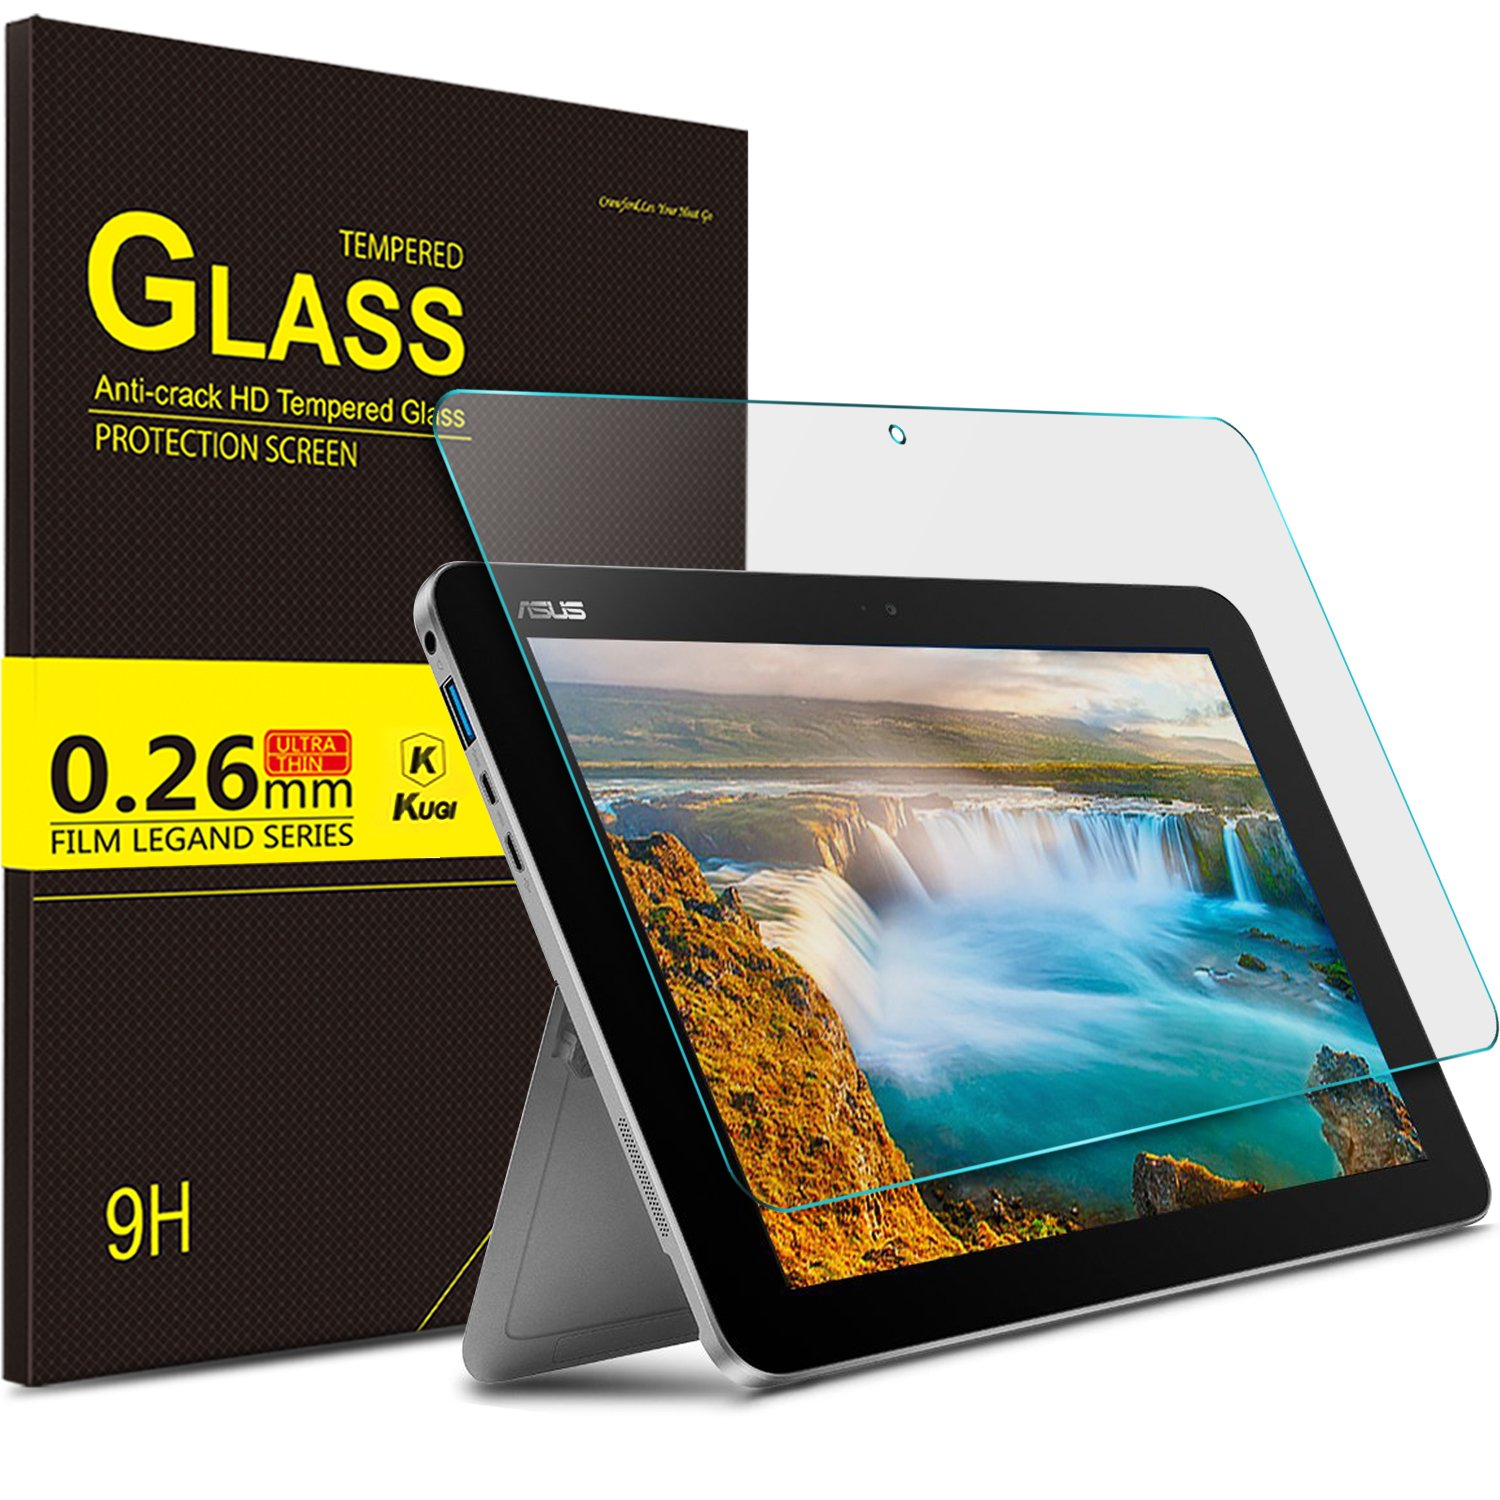 "KuGi Asus Transformer Mini T102HA screen protector - 9H Hardness HD clear Tempered Glass Screen Protector for ASUS 10.1"" Transformer Mini T102HA-D4-GR 2 in 1 Touchscreen Laptop (Clear) by KuGi"